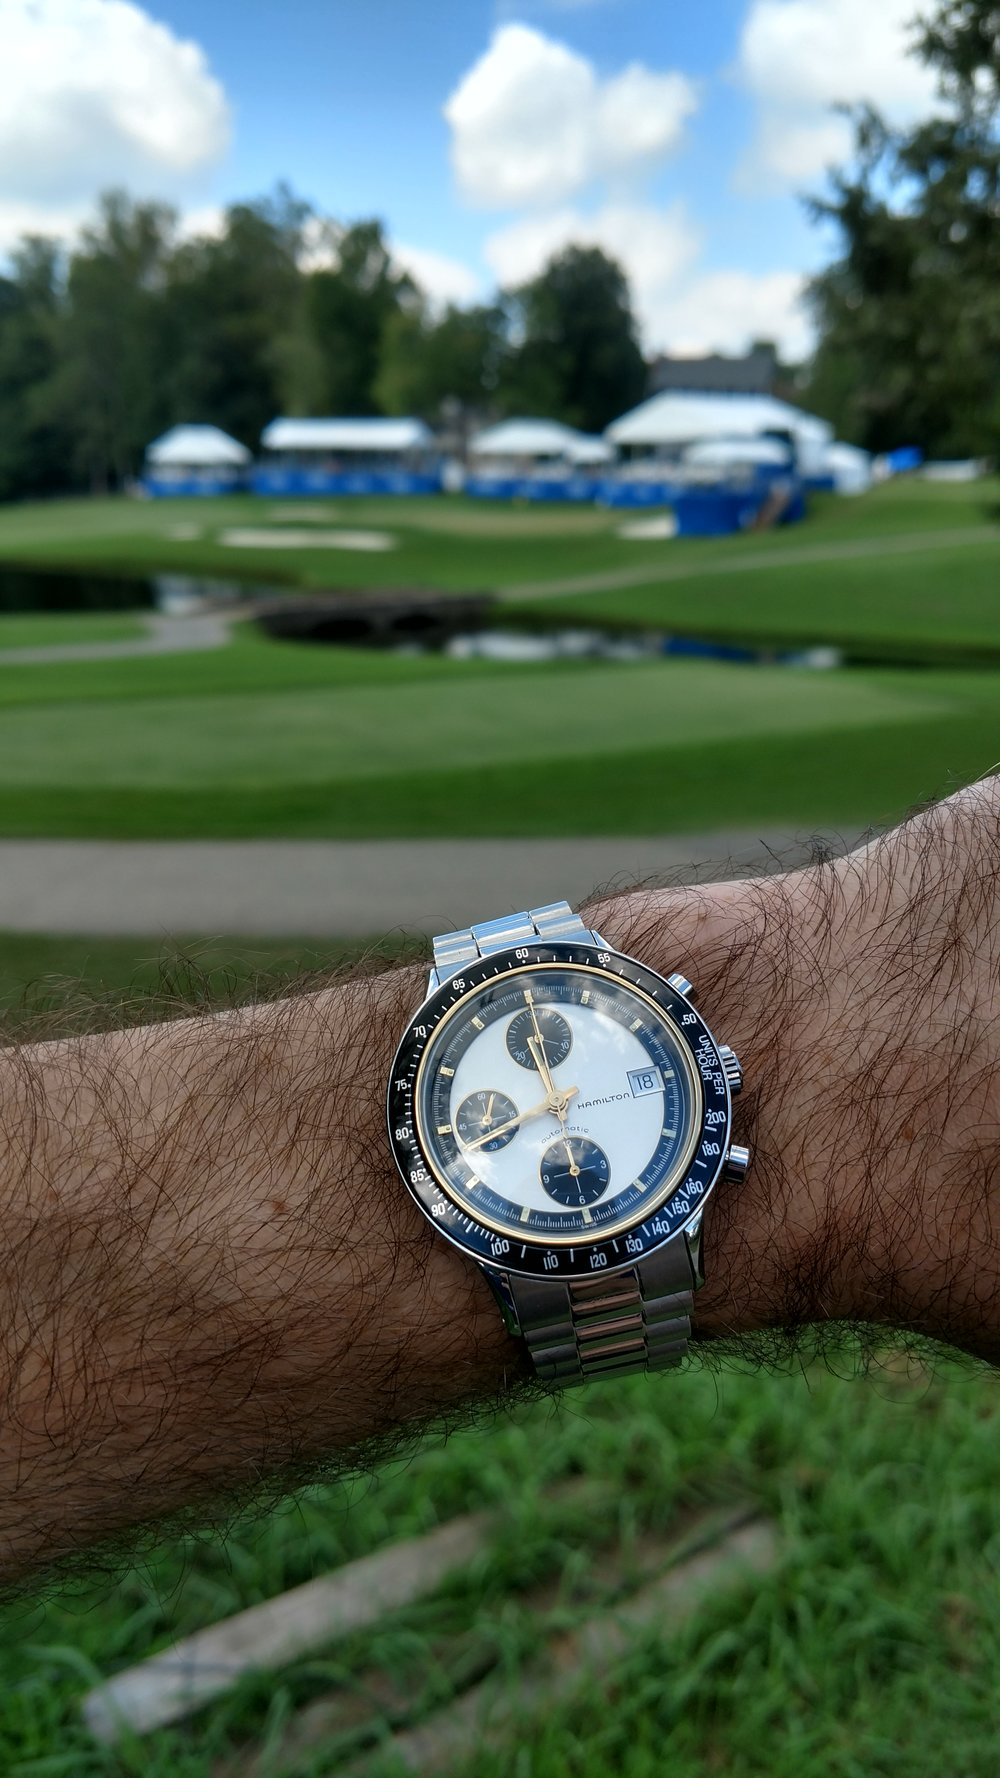 Circa 1990 Hamilton ChronoMatic II at Sedgefield Country Club for the Wyndham Championship  Greensboro, North Carolina